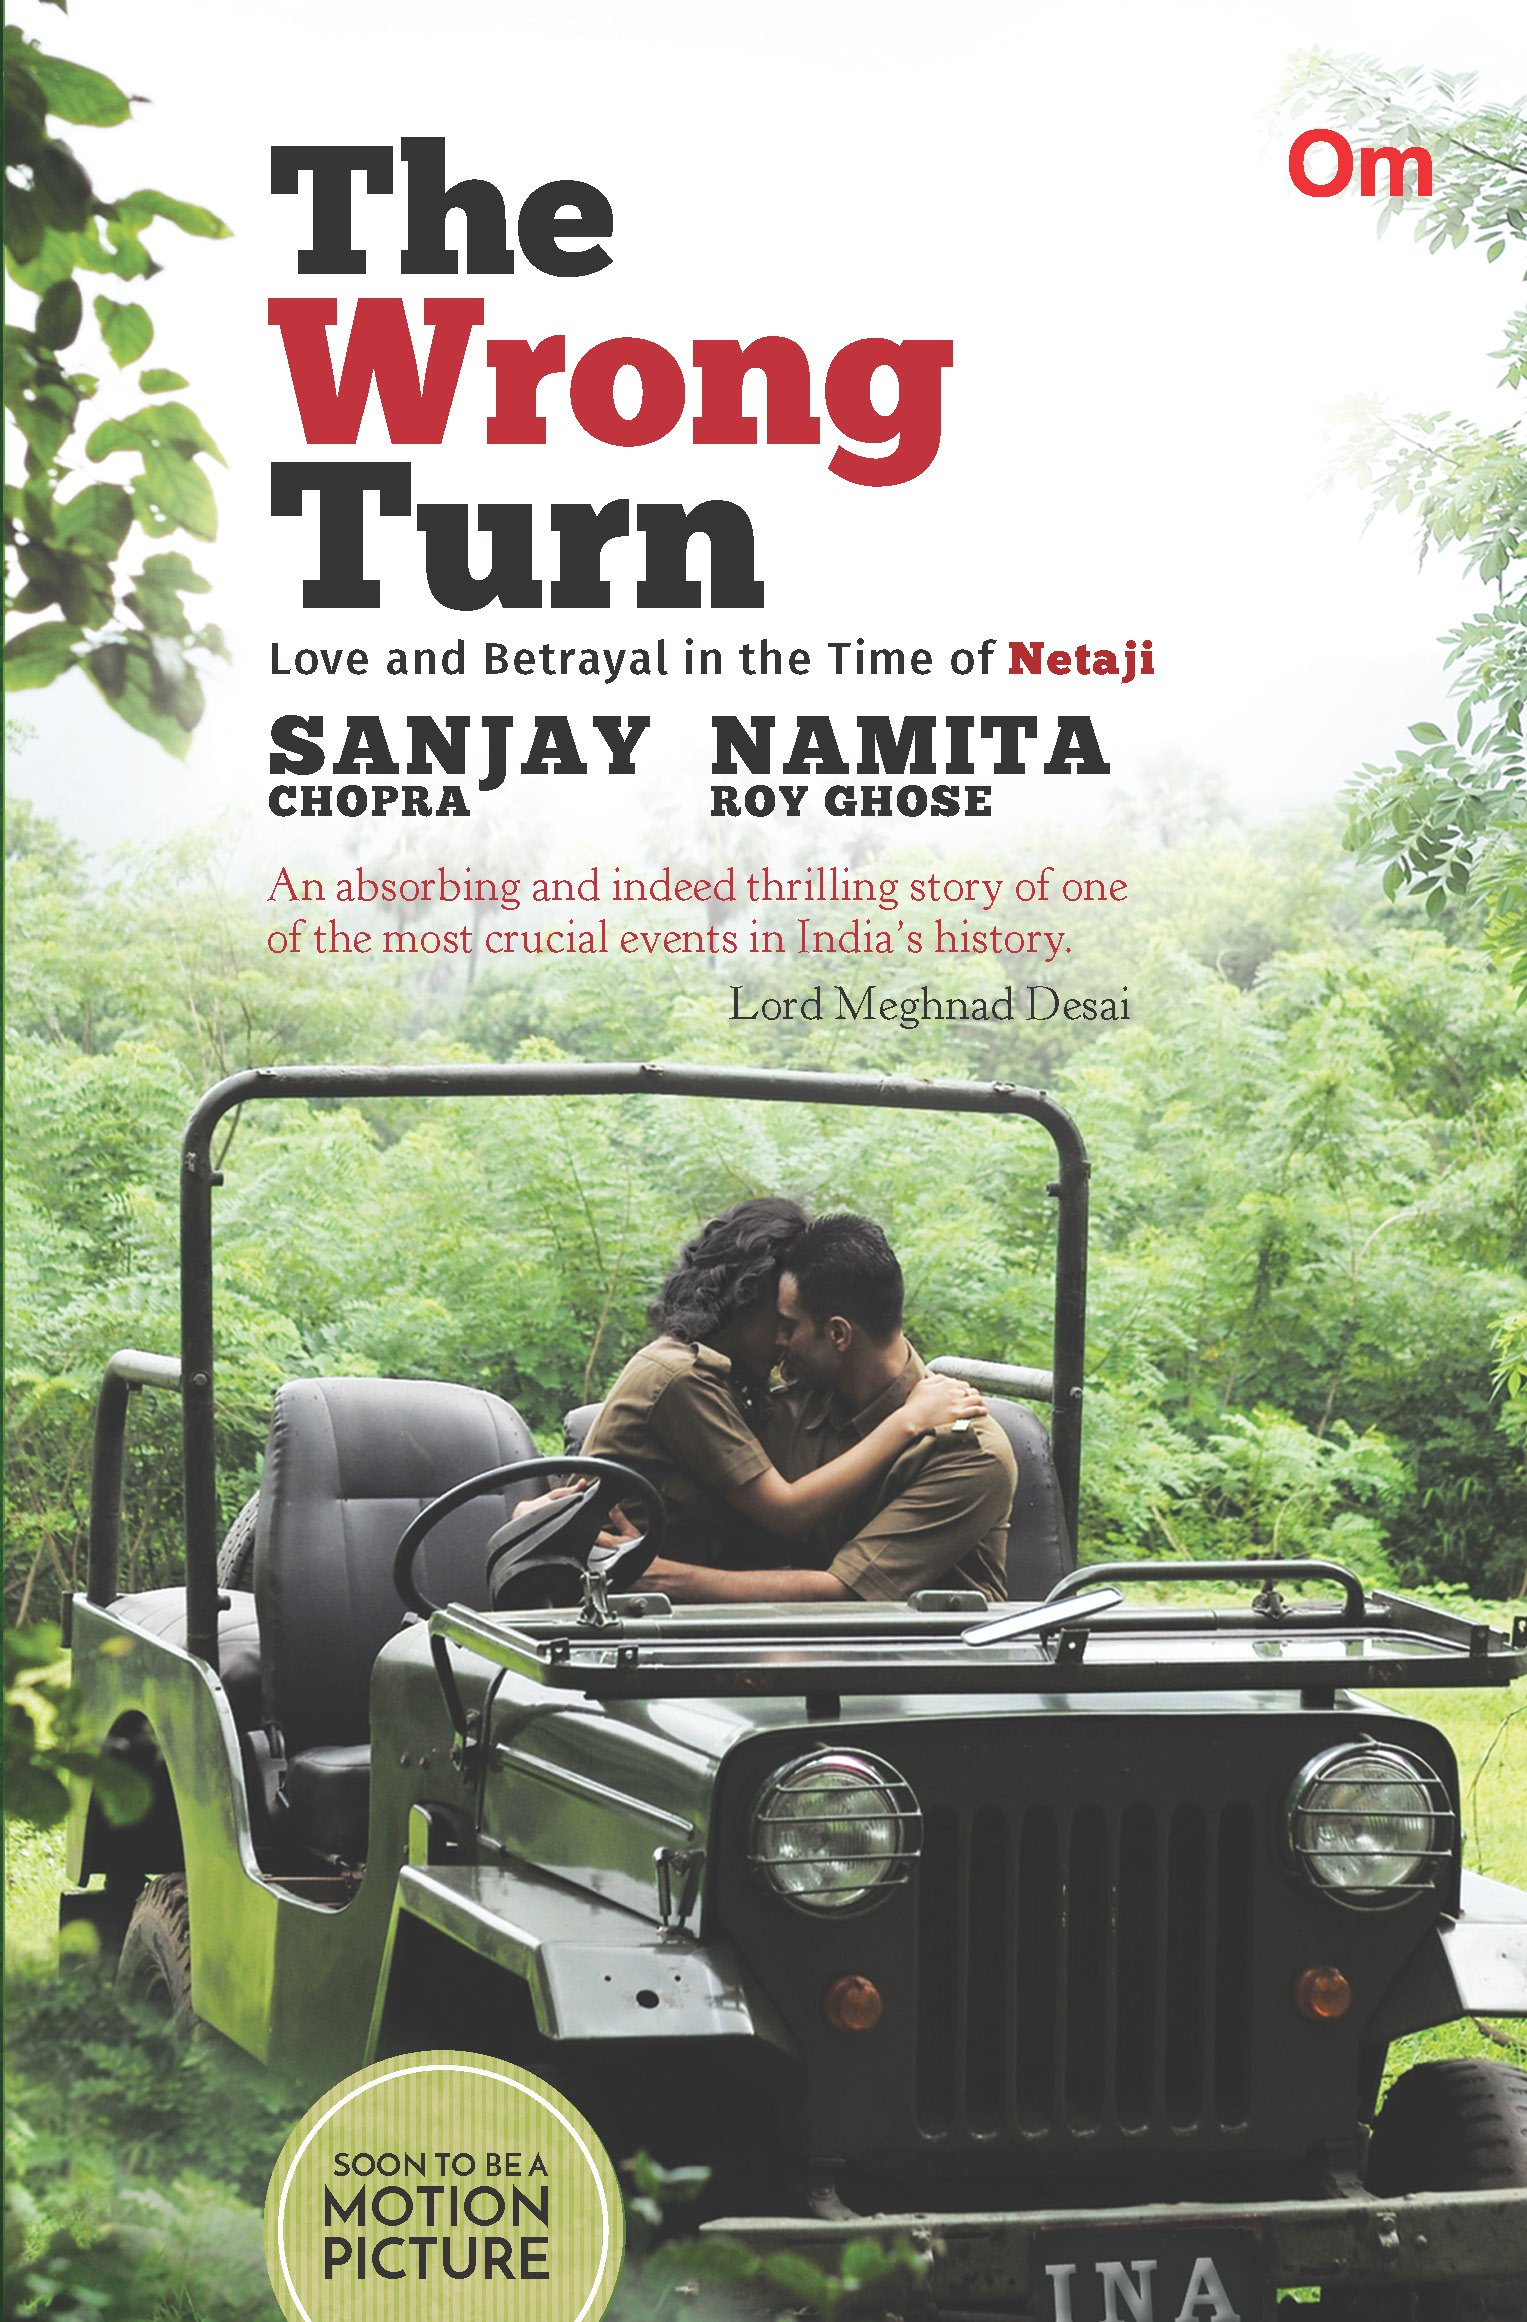 THE WRONG TURN - Love and Betrayal in the Time of Netaji.